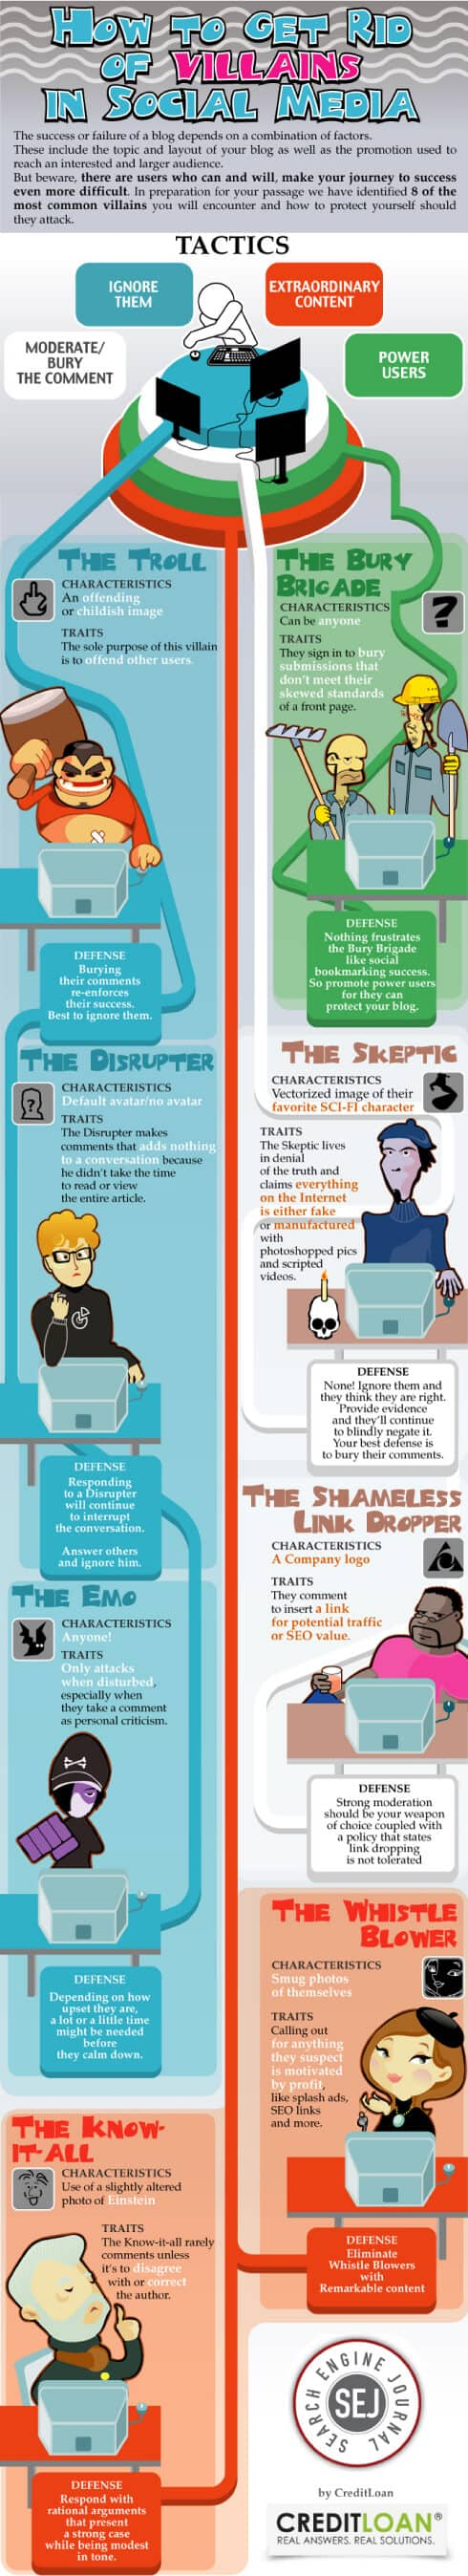 social media villains infographic